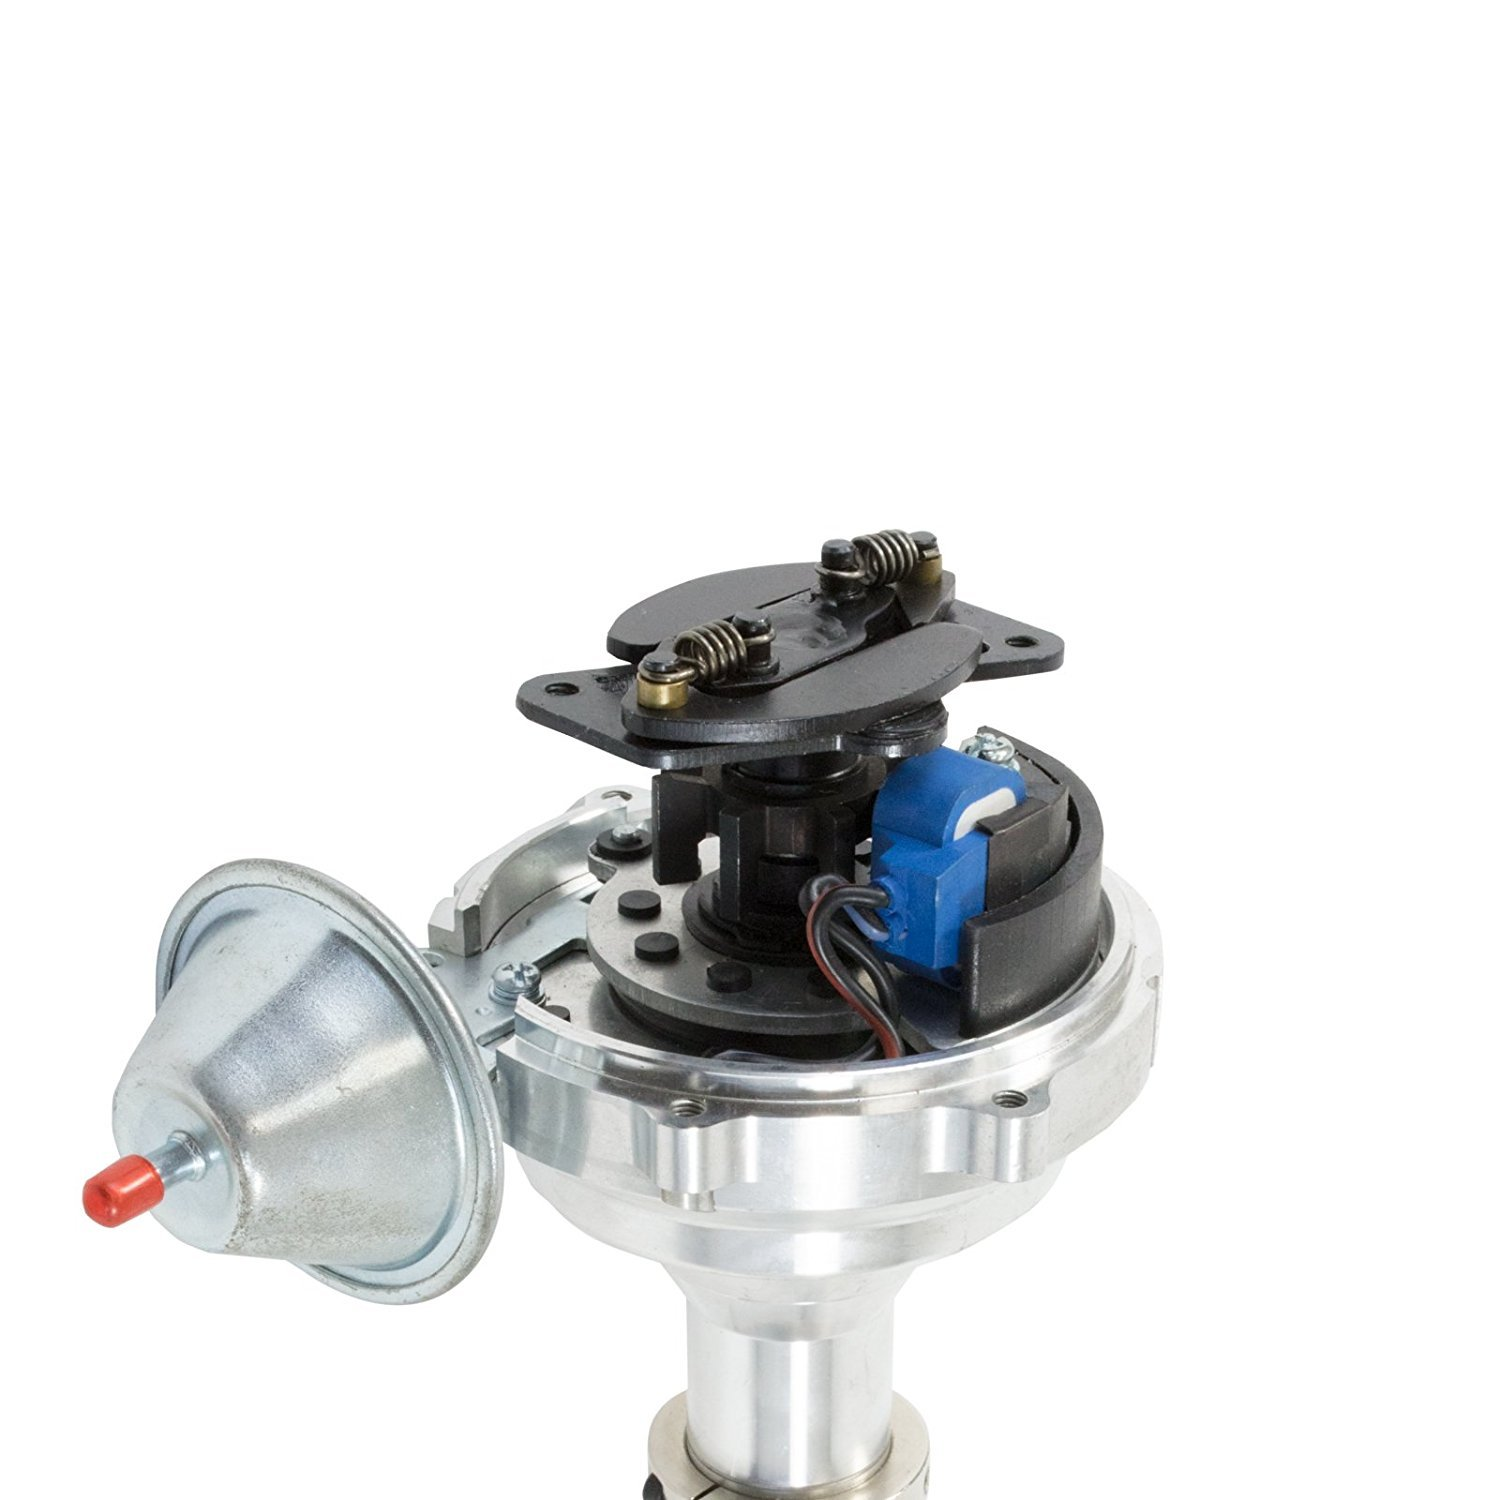 A-Team Performance SBC BBC V8 327 350 396 454 Pro Billet Series Ready to Run Distributor Compatible With CHEVY GMC Chevrolet with Fixed Collar R2R Black Cap